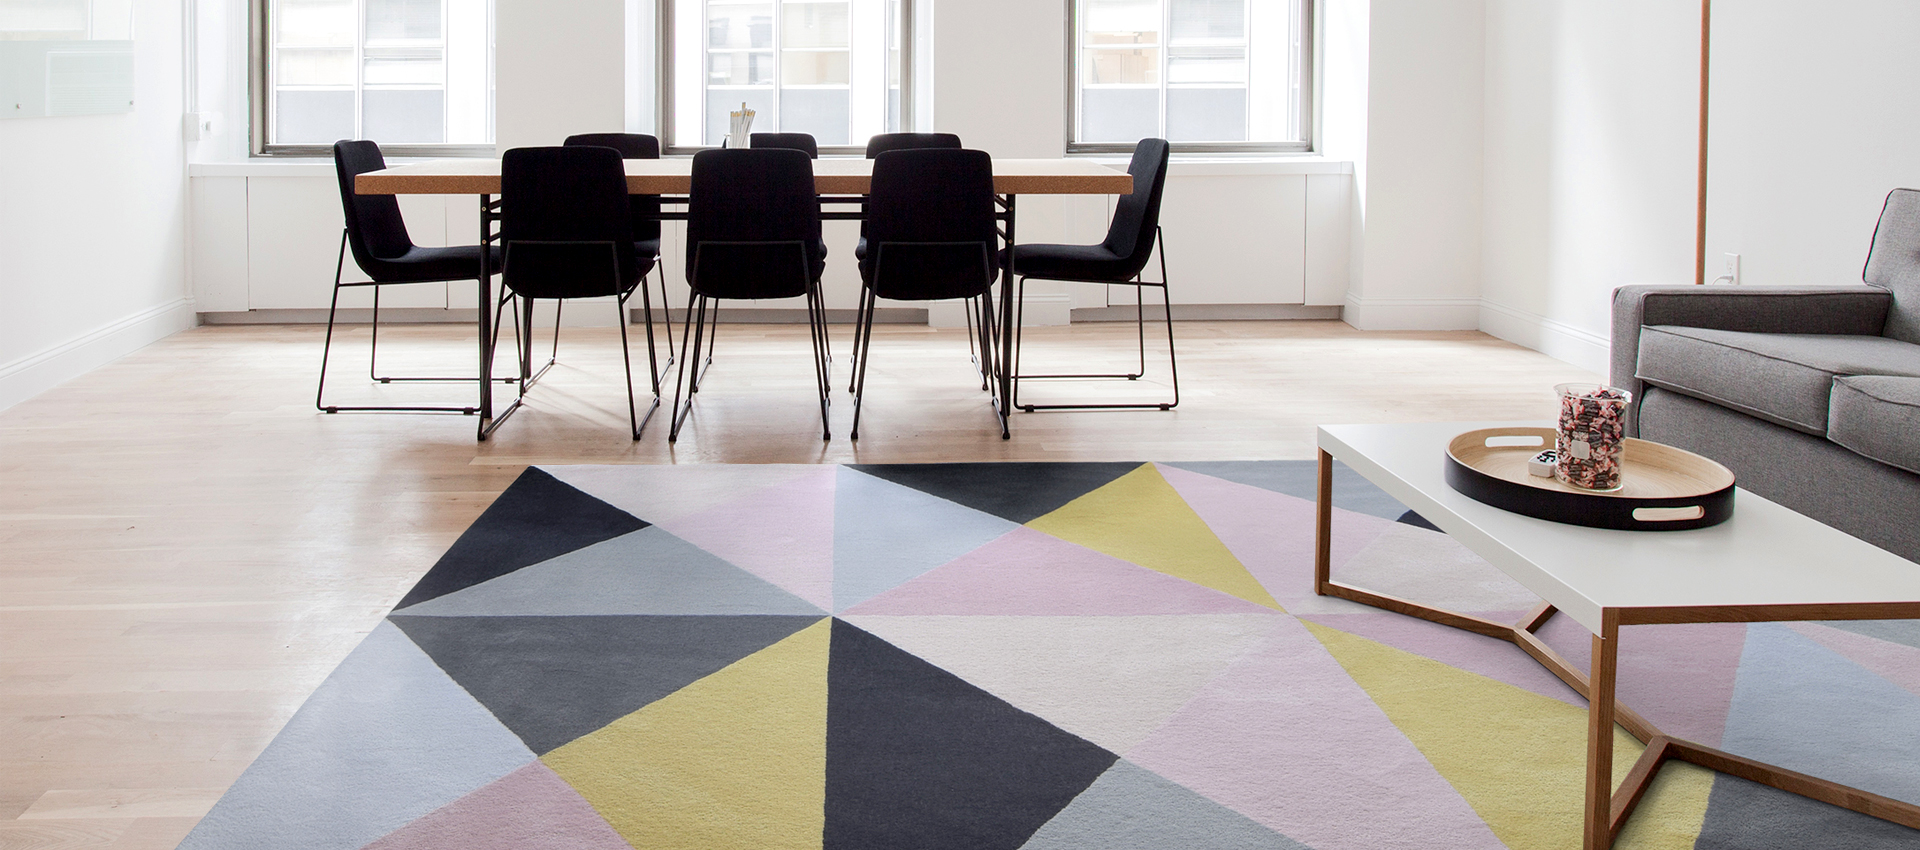 Custom Rug in a conference room | Urba Rugs Canada